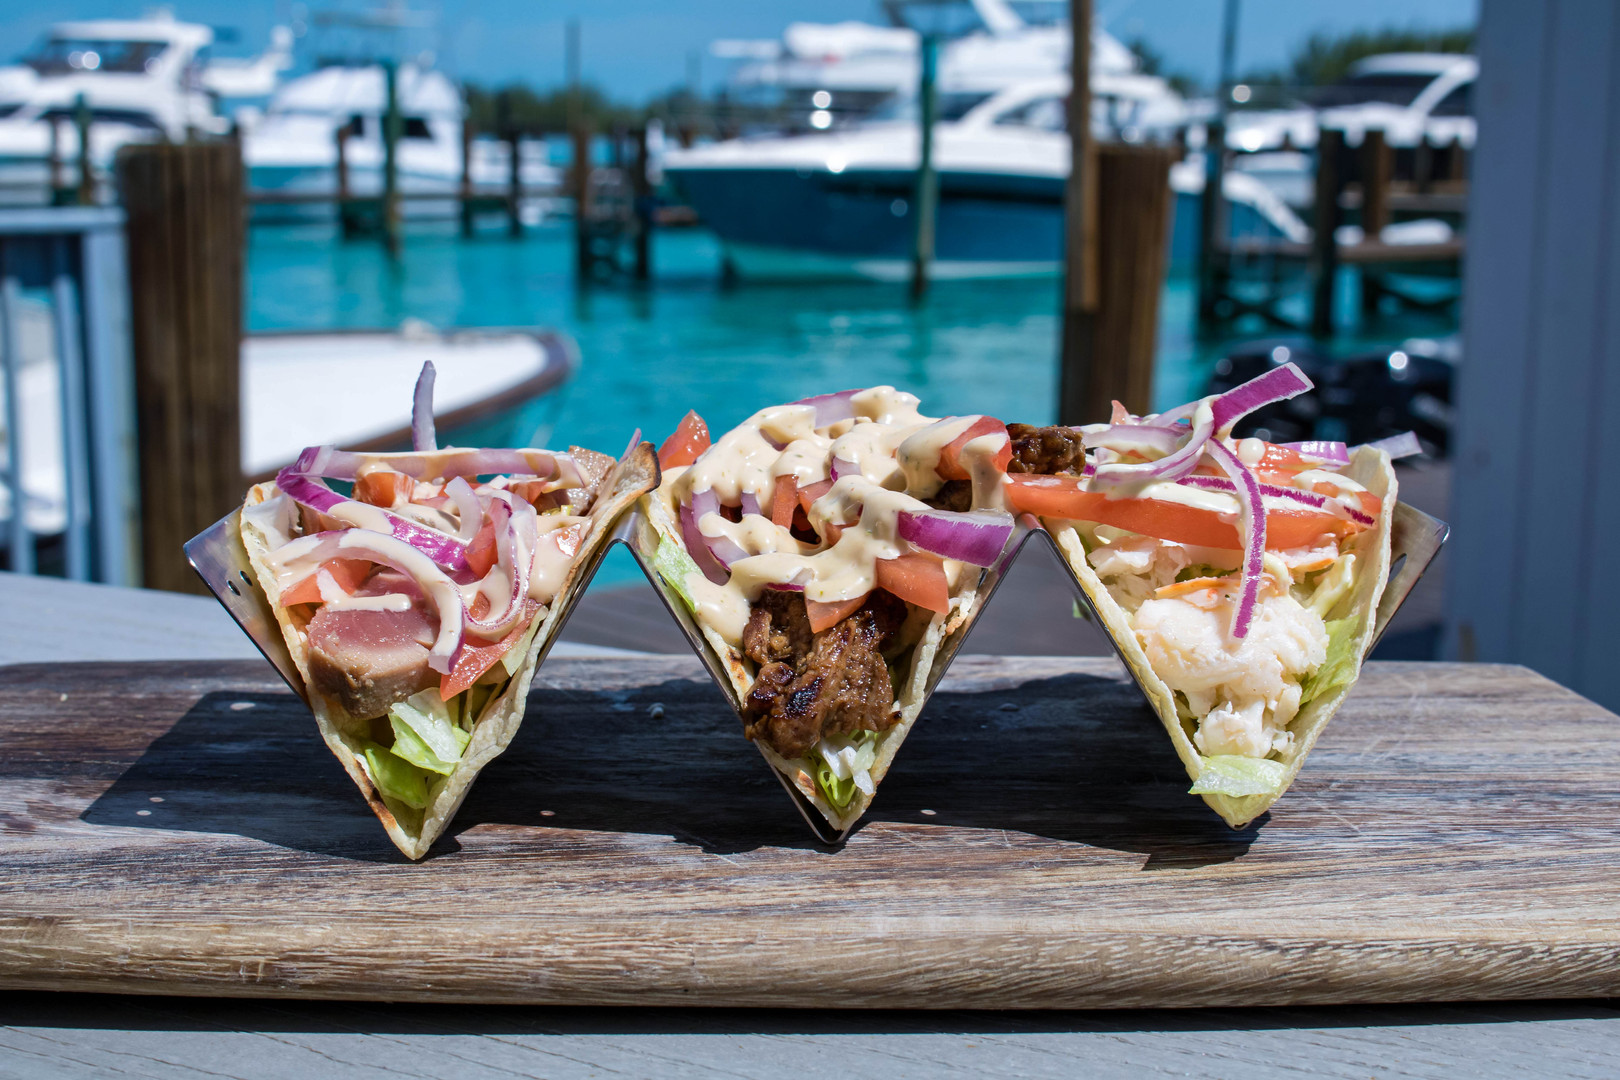 Tacos Shot by Miami food Photographer Jorge Alberto Perez